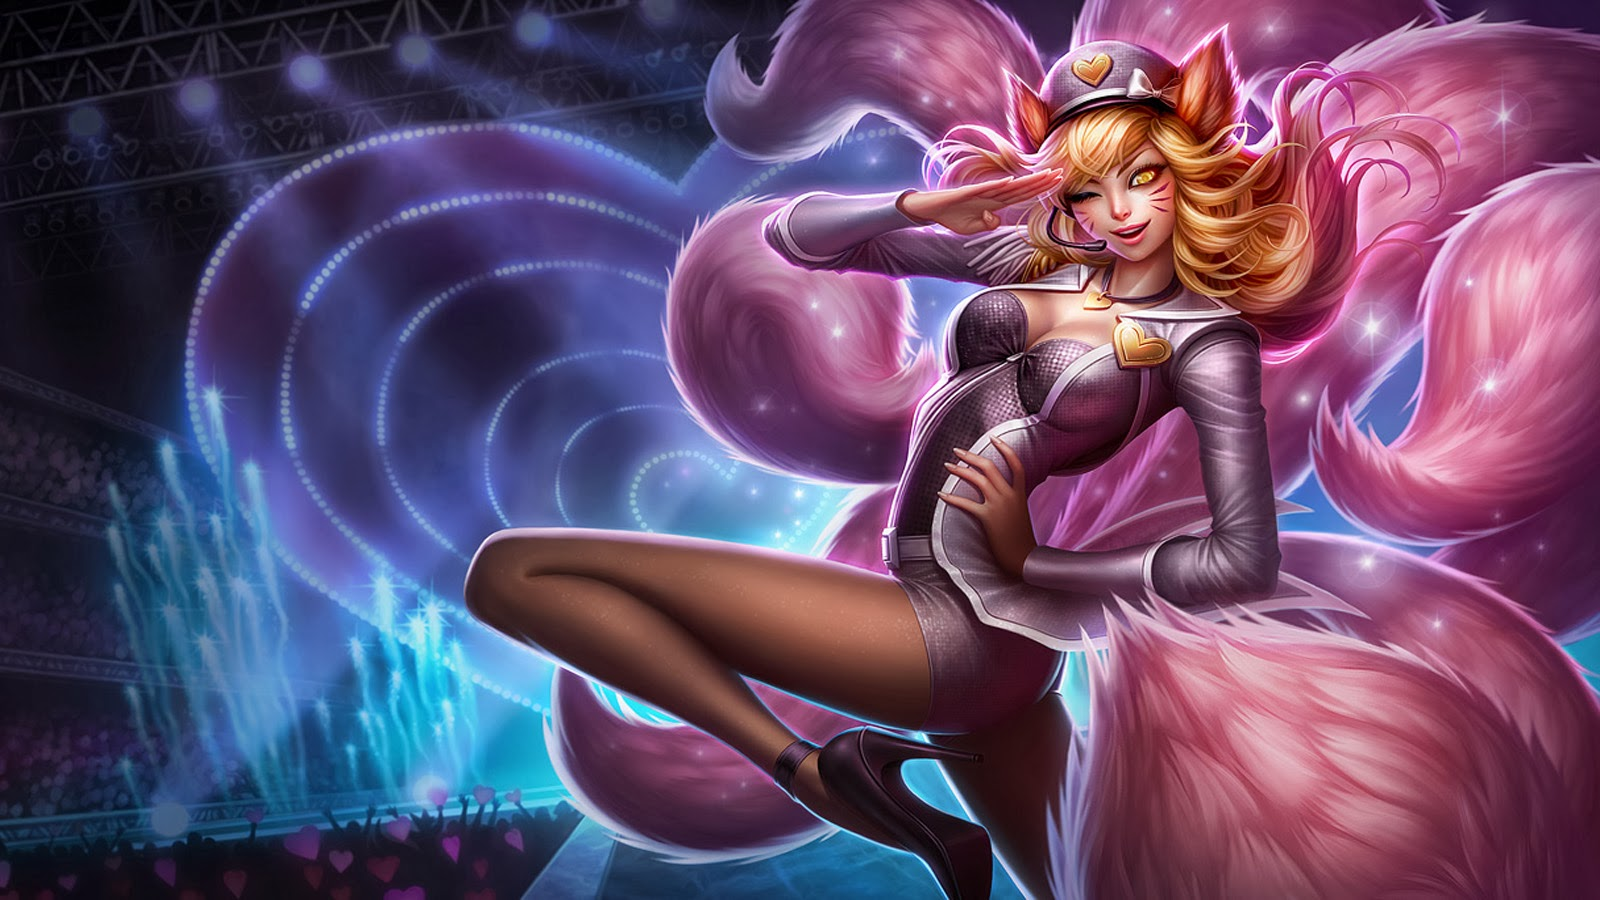 Ahri League of Legends Popstar 27 Wallpaper HD